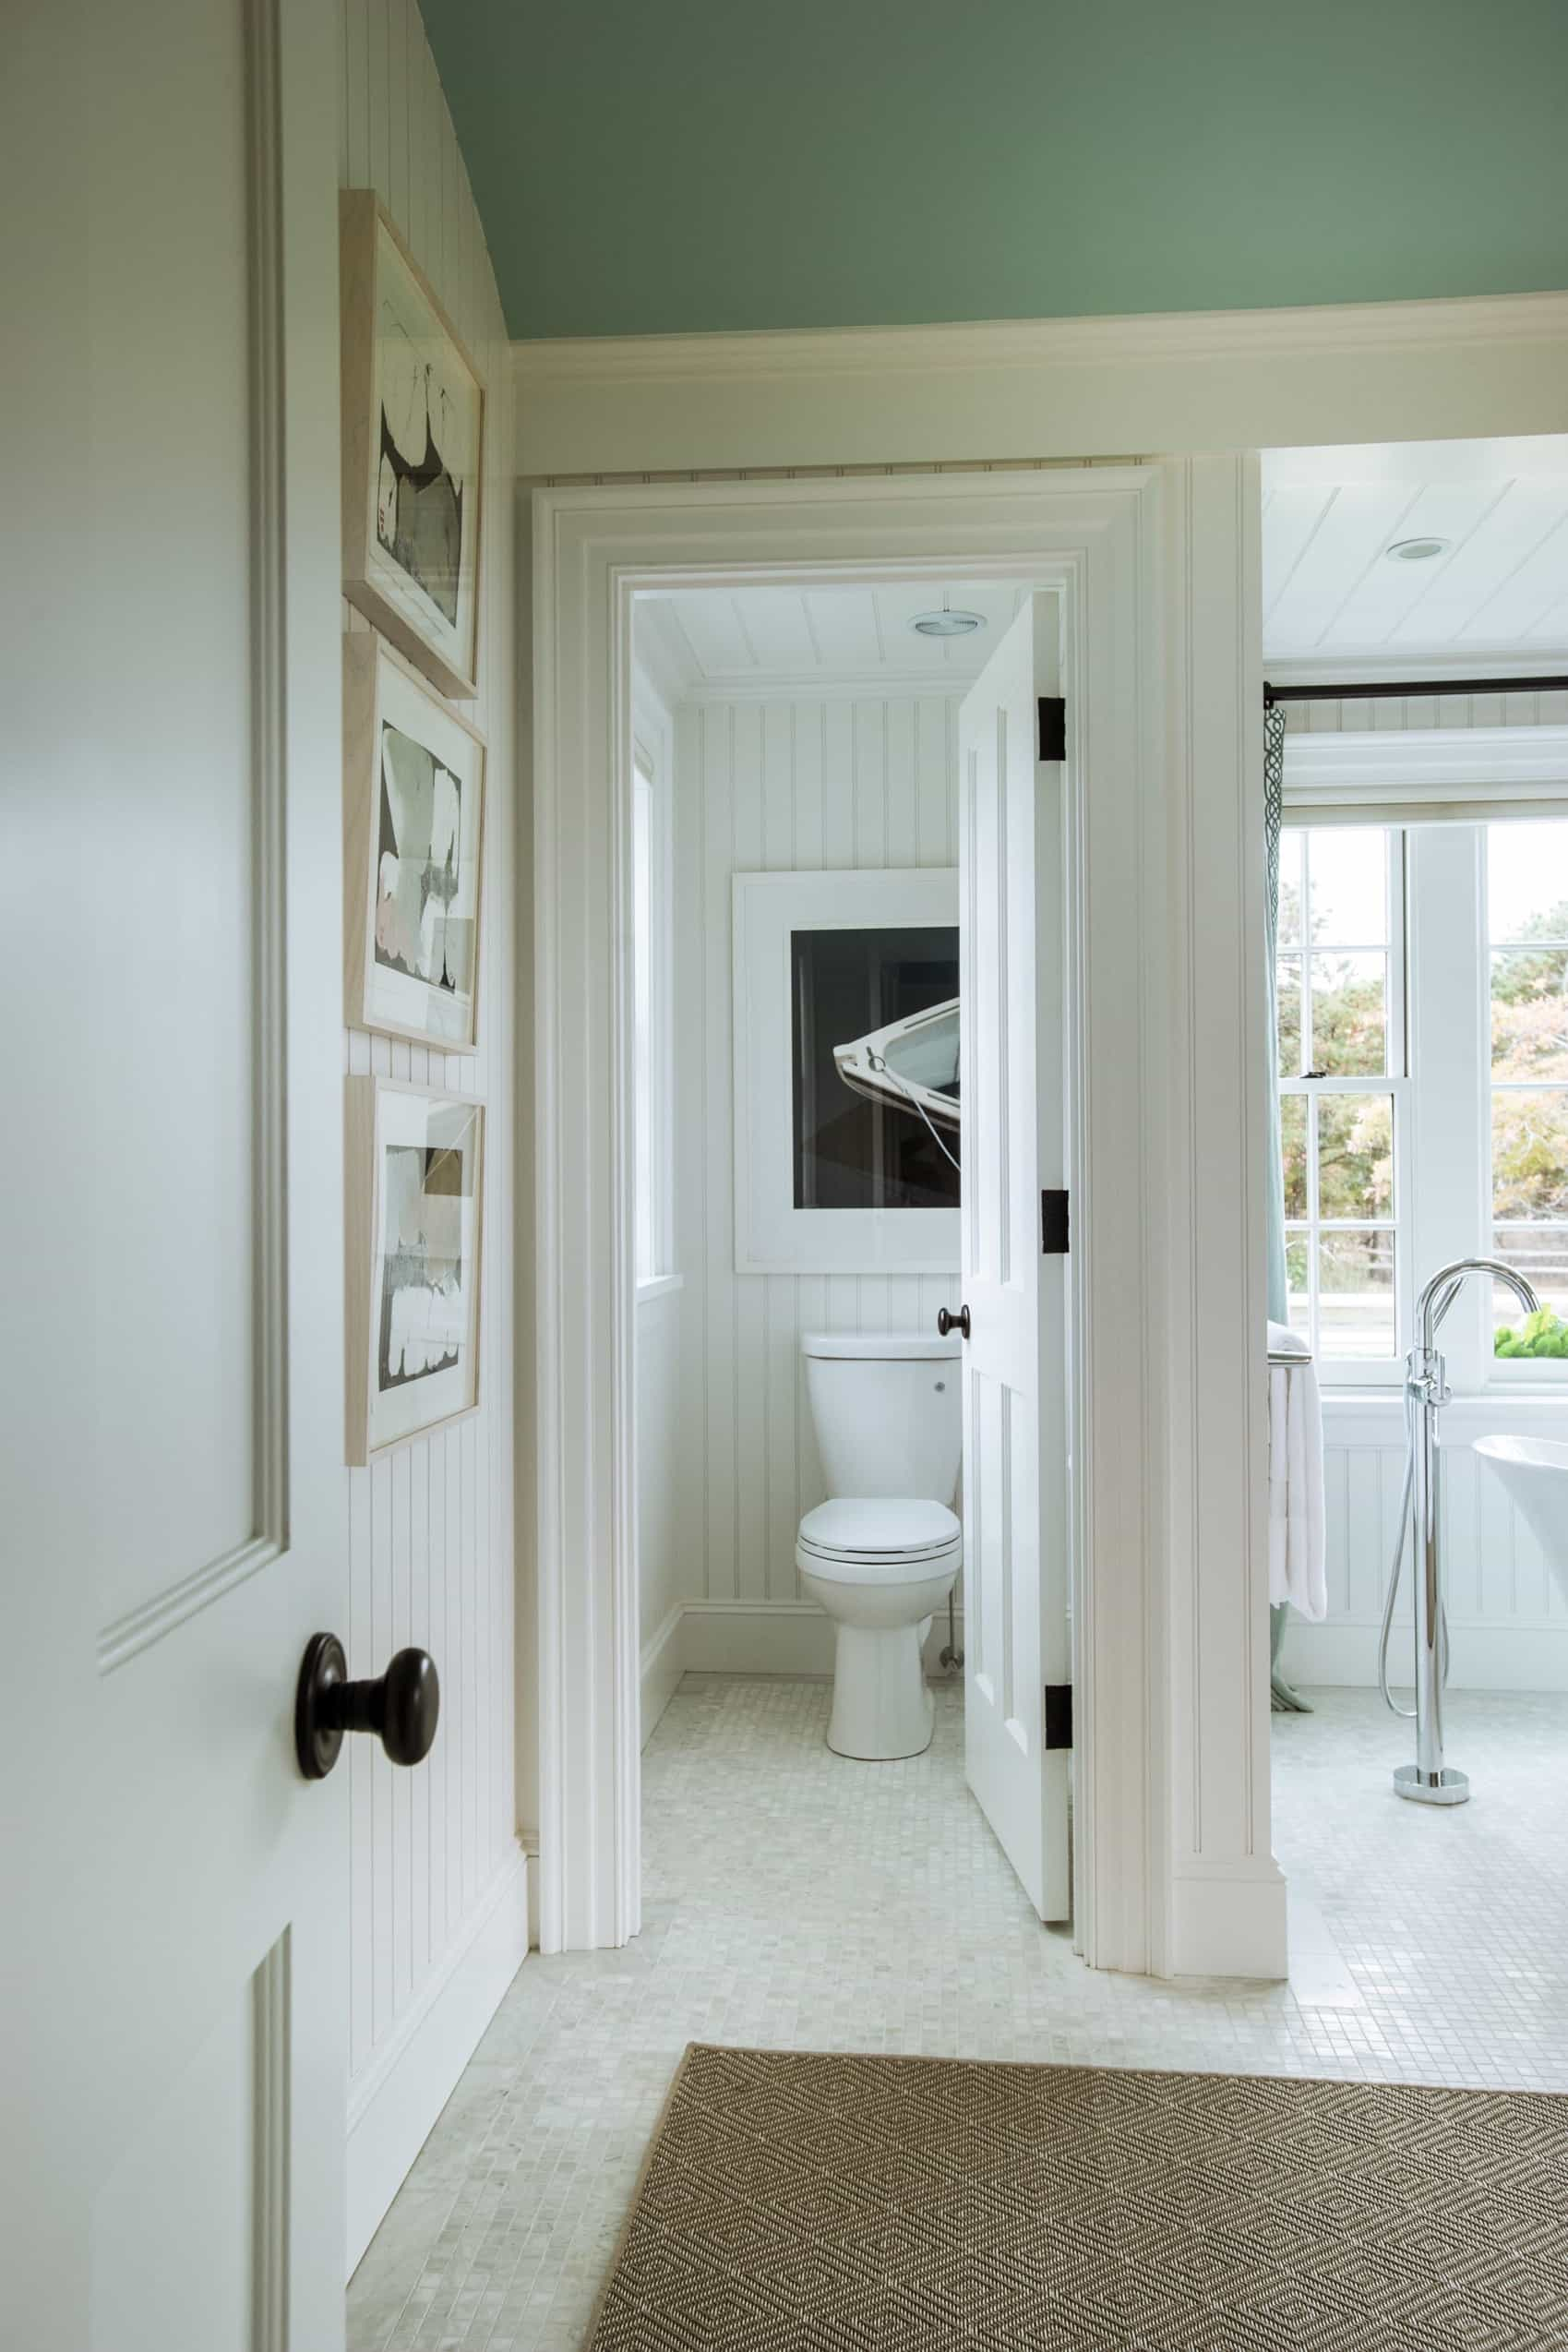 Master Bathroom With Private Toilet Stall 50607 House